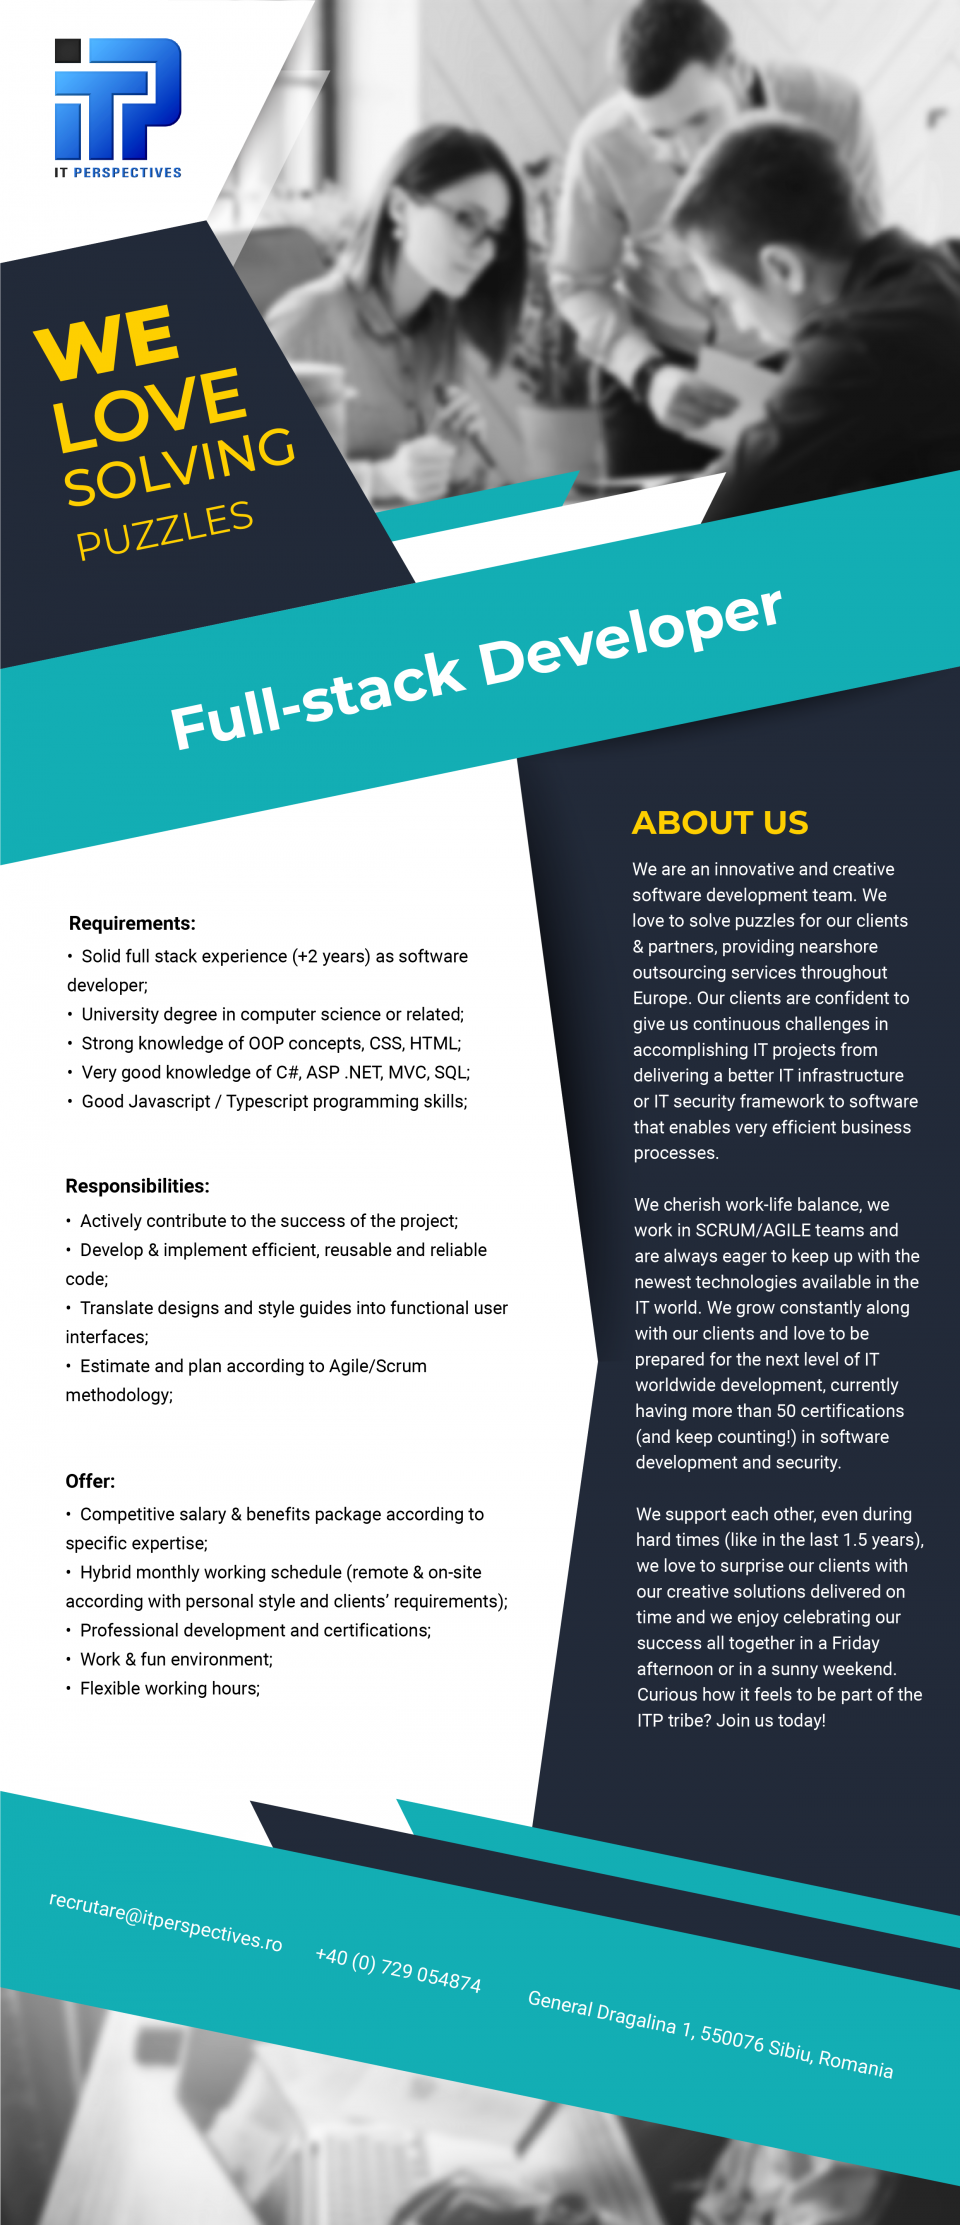 -Solid full stack experience  (+2 years)  as software developer; -University degree in computer science or related; -Strong knowledge of OOP concepts, CSS, HTML; -Very good knowledge of C#, ASP .NET, MVC, SQL;  -Good Javascript / Typescript programming skills; -Actively contribute to the success of the project; -Develop & implement efficient, reusable and reliable code; -Translate designs and style guides into functional user interfaces; -Estimate and plan according to Agile/Scrum methodology; We are an innovative and creative software development team. We love to solve puzzles for our clients & partners, providing nearshore outsourcing services throughout Europe. Our clients are confident to give us continuous challenges in accomplishing IT projects from delivering a better IT infrastructure or IT security framework to software that enables very efficient business processes. We cherish work-life balance, we work in SCRUM/AGILE teams and are always eager to keep up with the newest technologies available in the IT world. We grow constantly along with our clients and love to be prepared for the next level of IT worldwide development, currently having more than 50 certifications (and keep counting!) in software development and security.   We support each other, even during hard times (like in the last 1.5 years),  we love to surprise our clients with our creative solutions delivered on time and we enjoy celebrating our success all together in a Friday afternoon or in a sunny weekend. Curious how it feels to be part of the ITP tribe? Join us today!